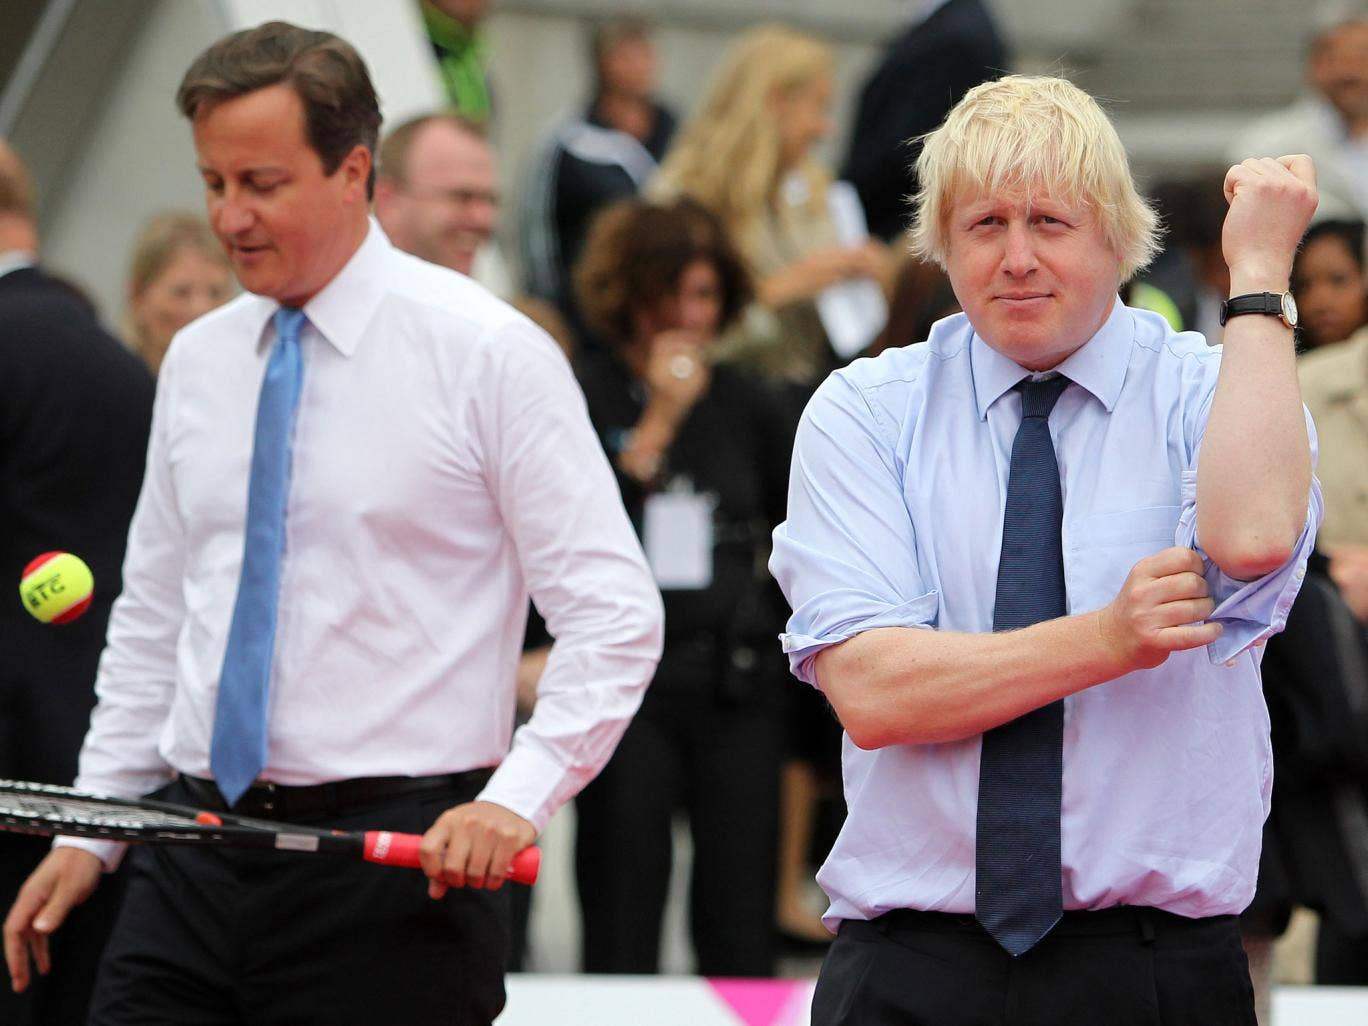 Prime Minister David Cameron and Mayor of London Boris Johnson warm up for a tennis match during the International Paralympic Day at Trafalgar Square on September 8, 2011 in London, England.